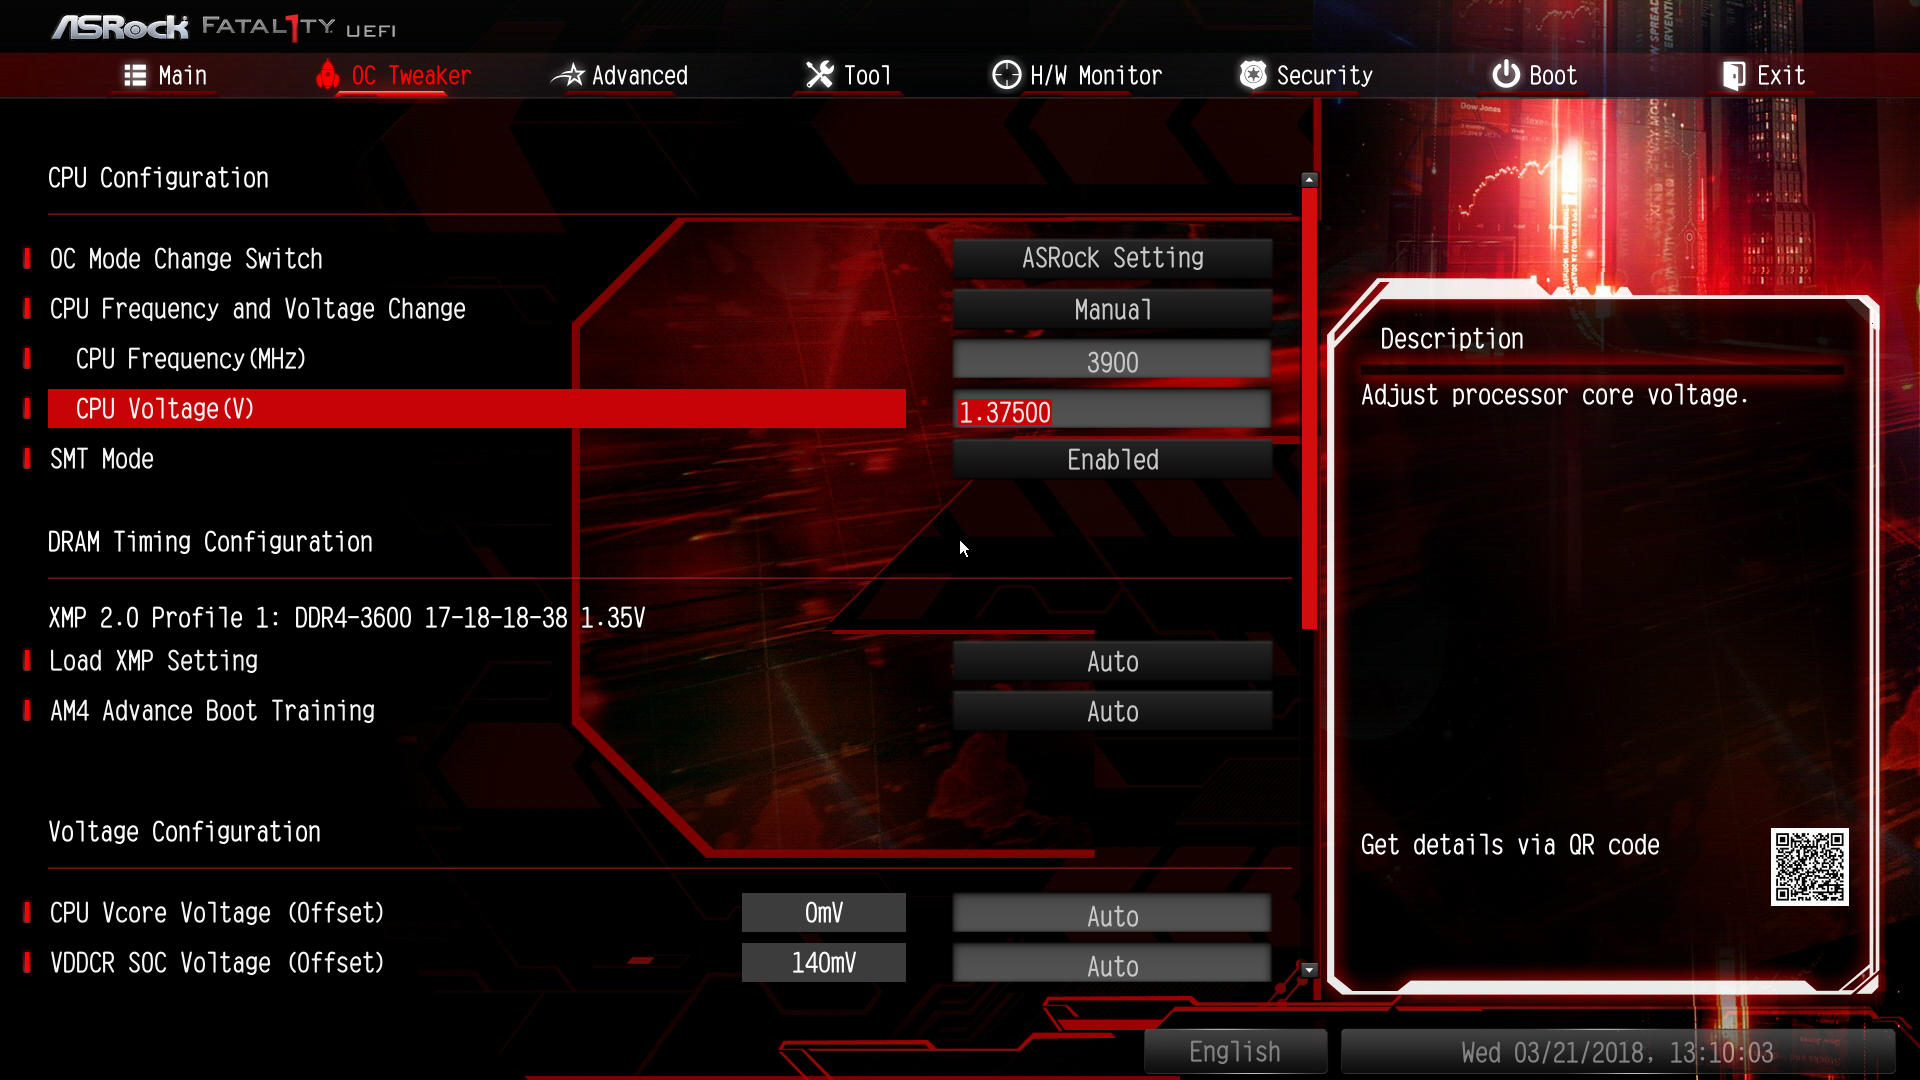 How to Overclock With ASRock UEFI BIOS - Overclocking The AMD Ryzen